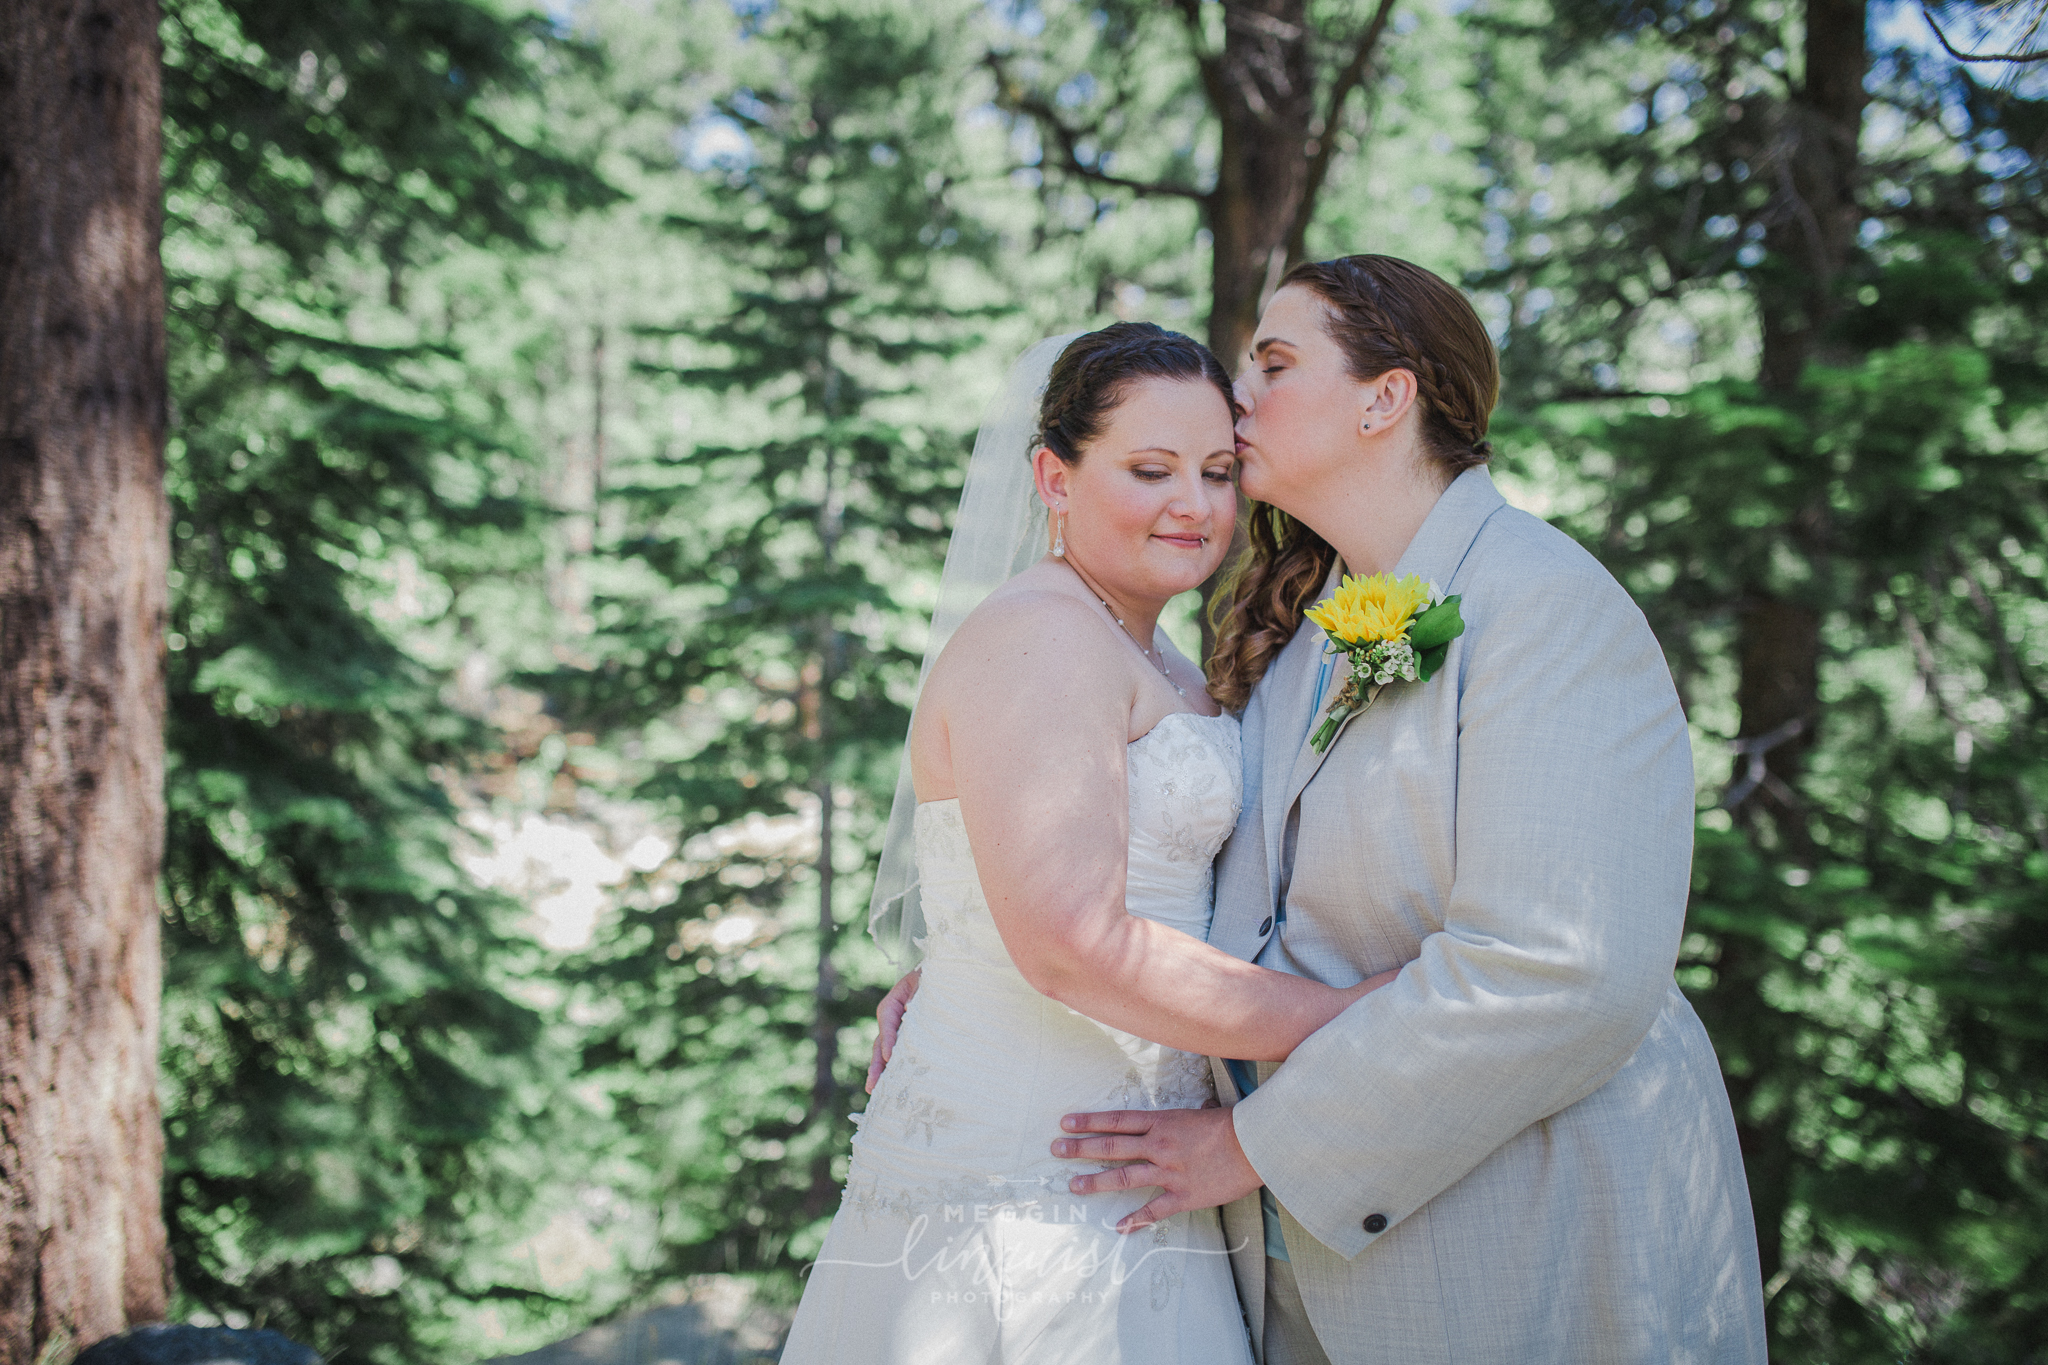 same-sex-wedding-reno-lake-tahoe-wedding-photographer-15.jpg